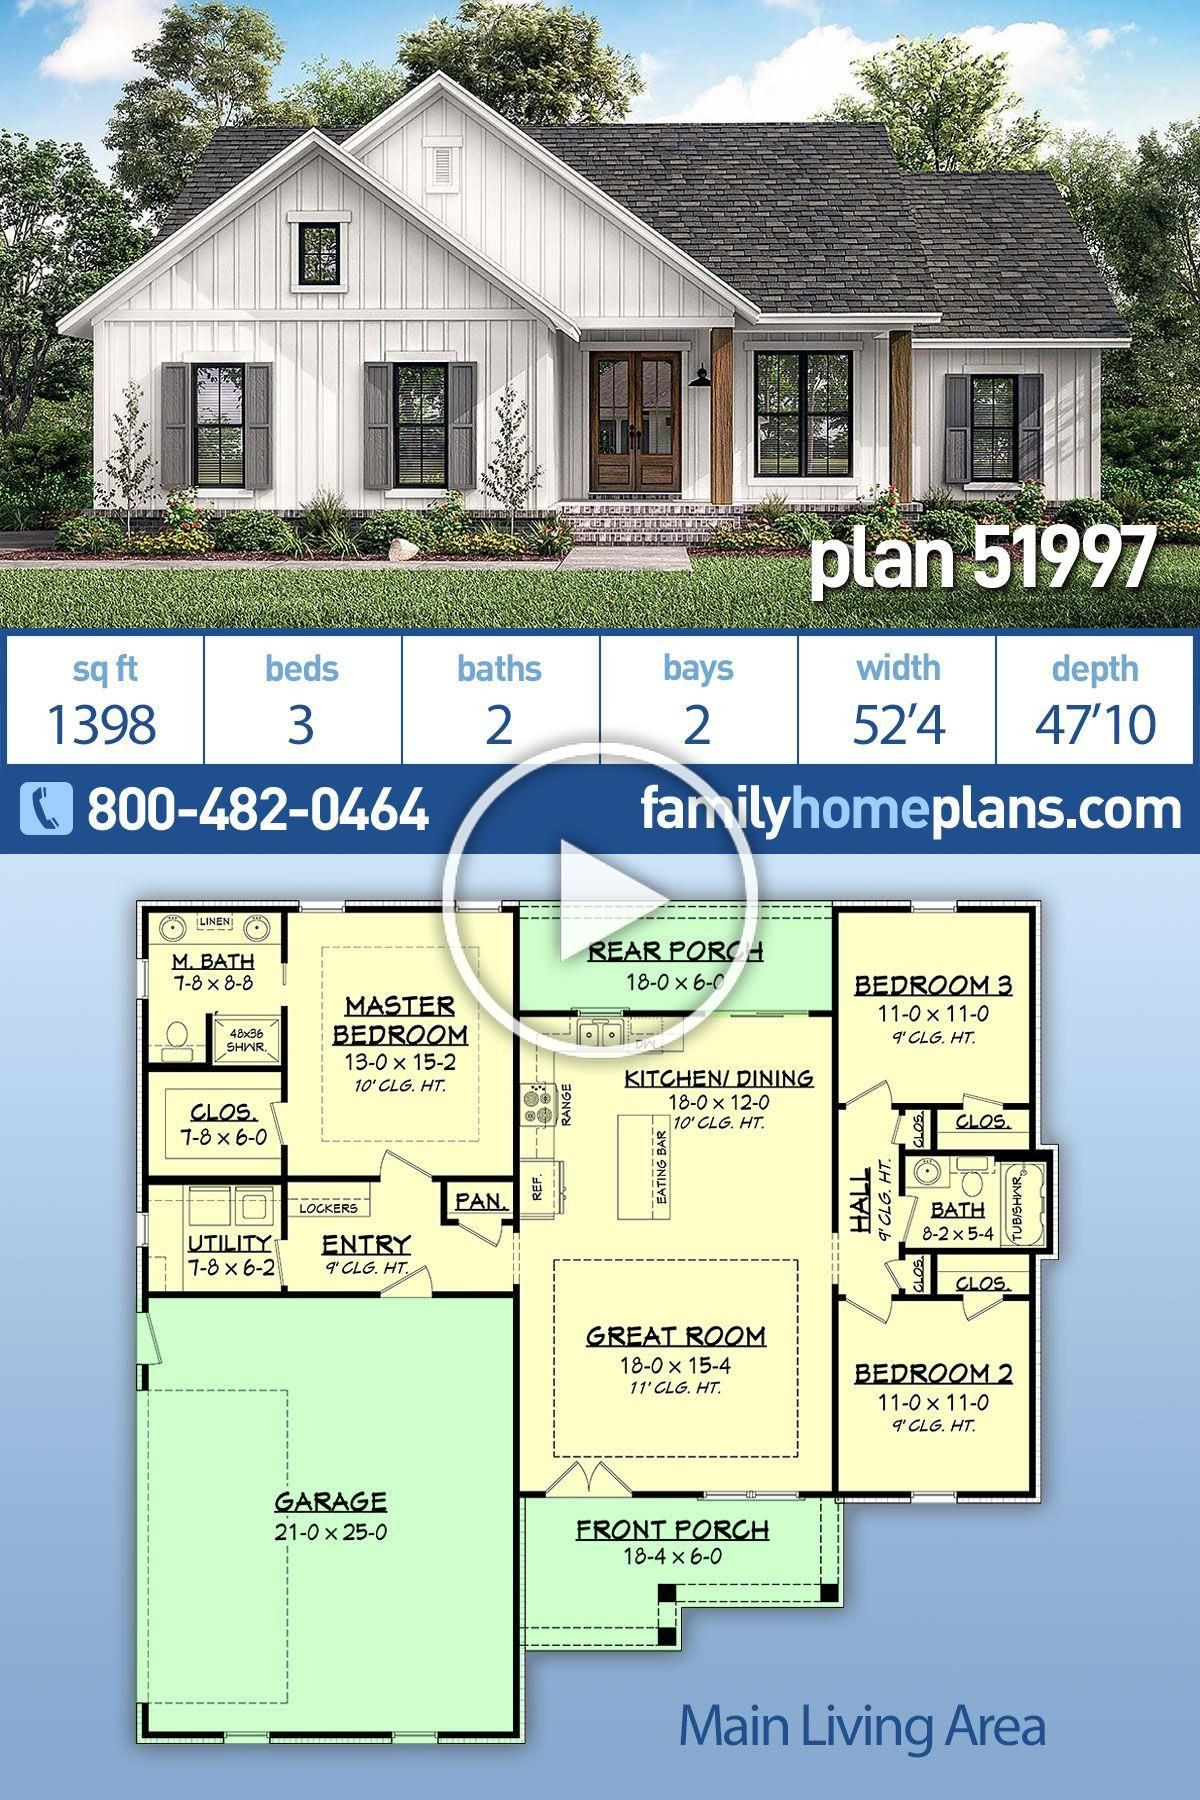 House Plans for Small Country Homes New Small Country Home Plan with Just Under 1400 Sq Ft This 3